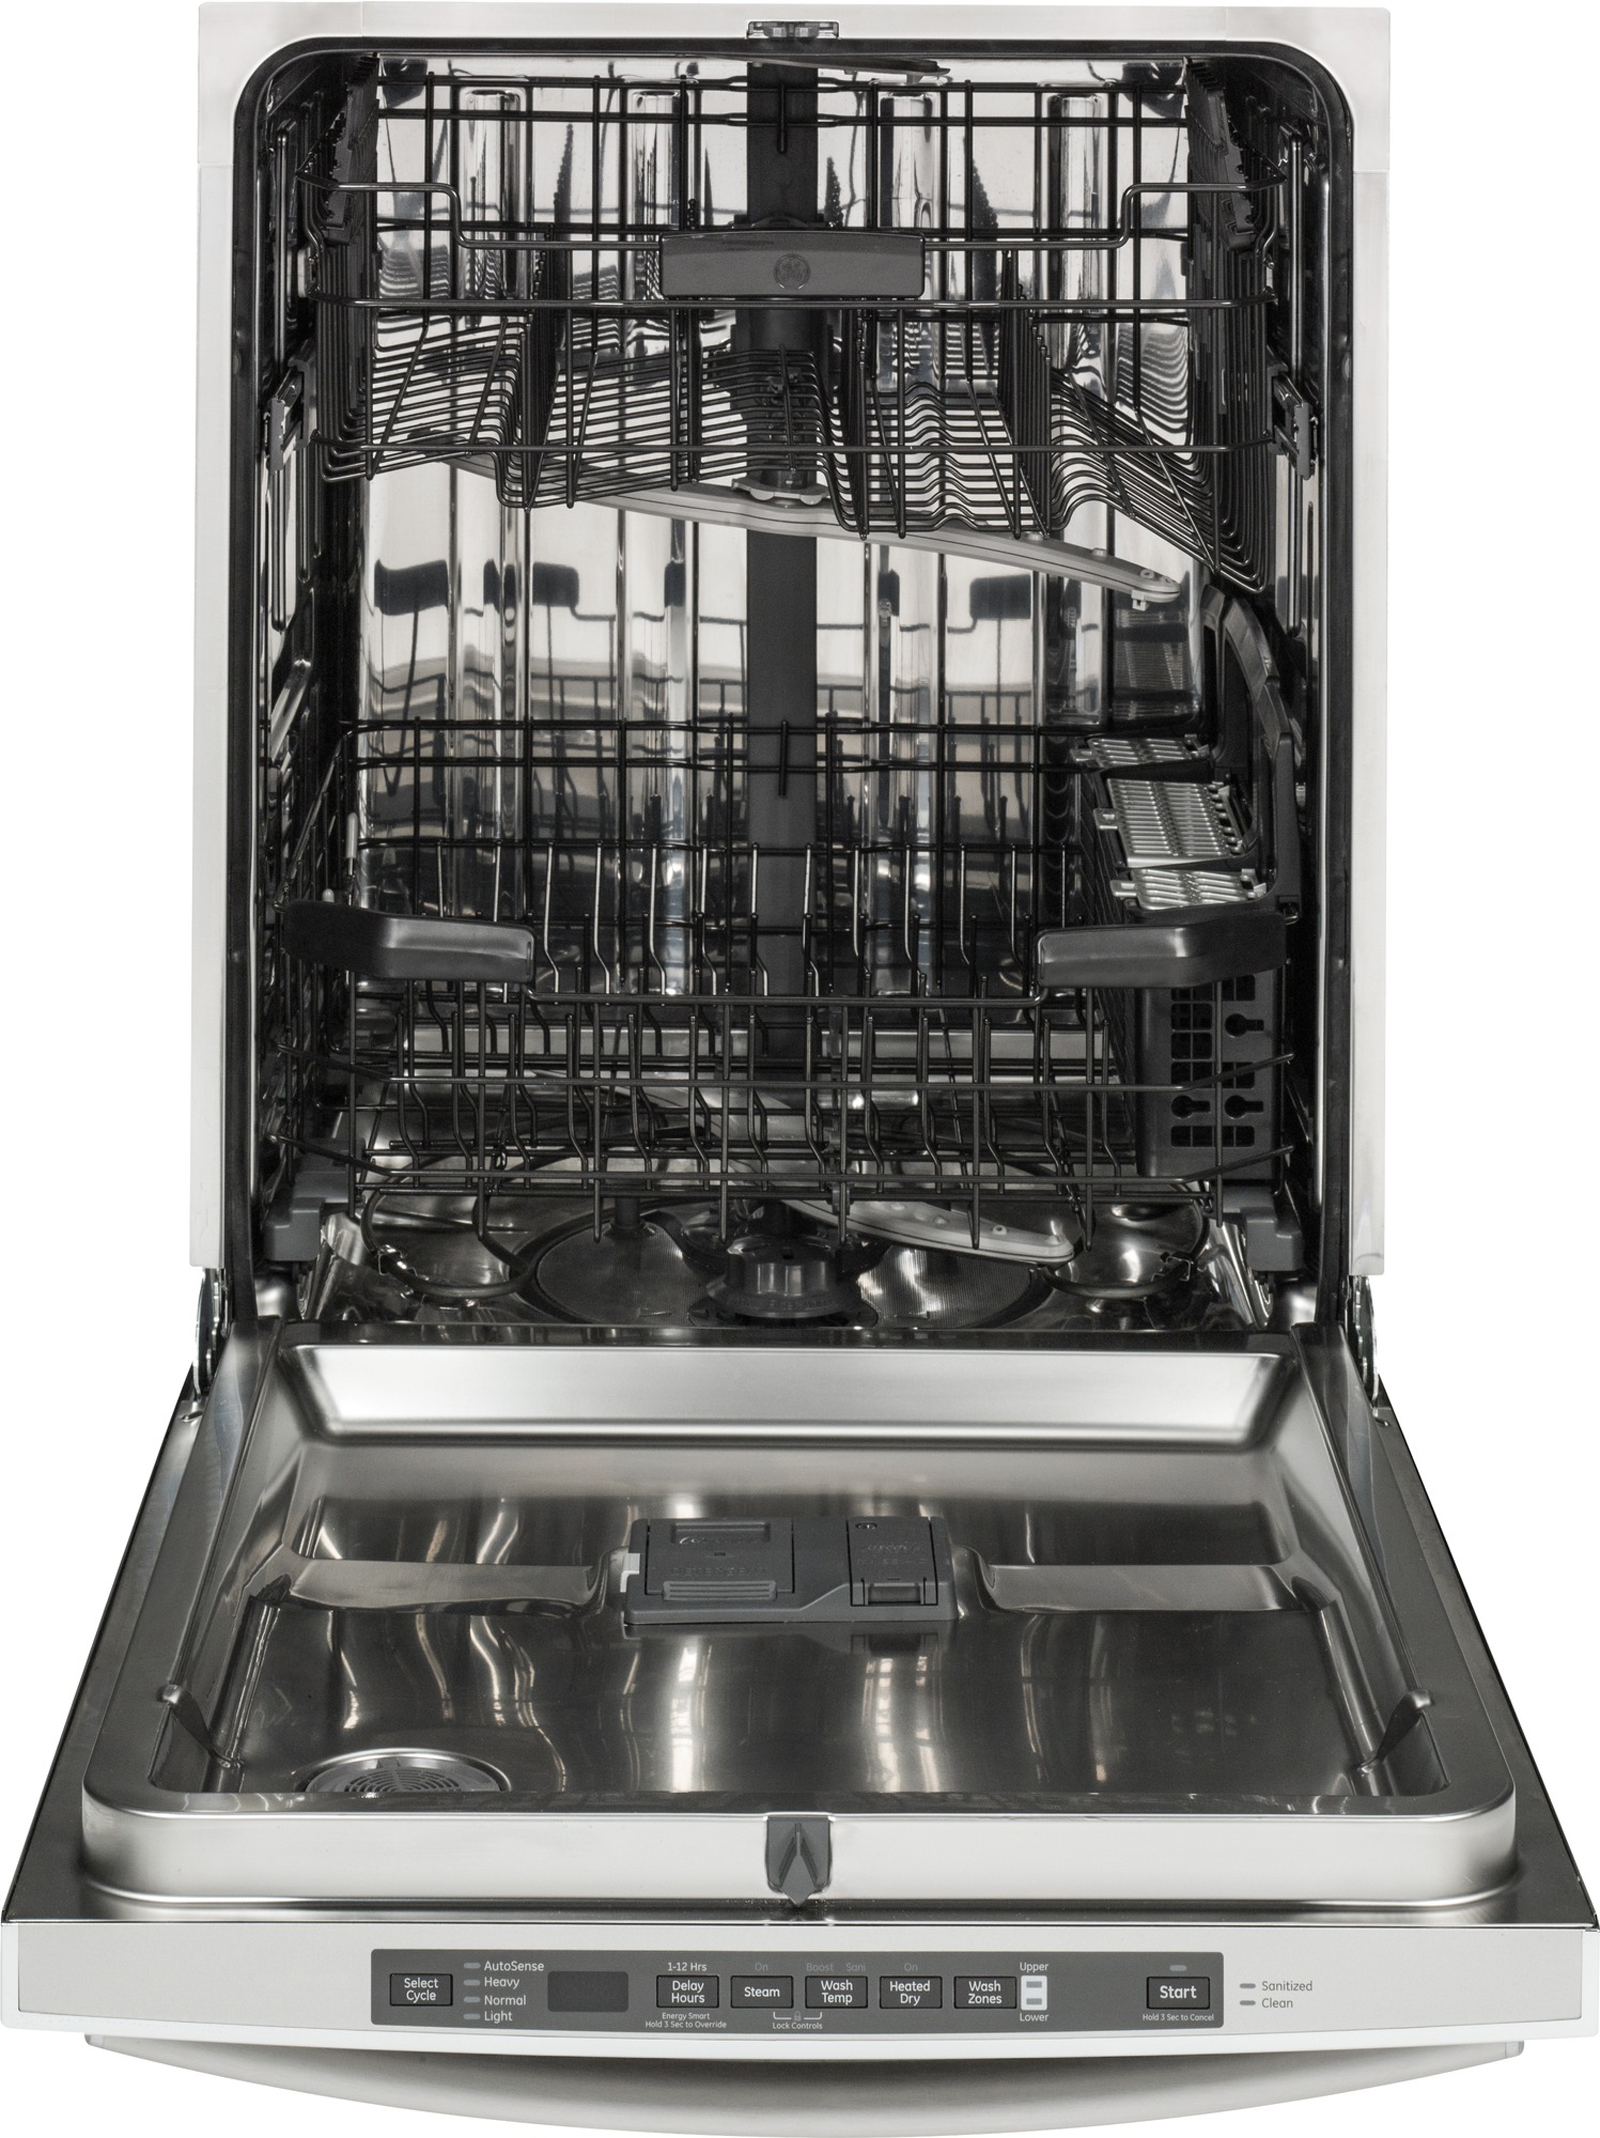 GE Appliances GDT580SSFSS Stainless Steel Interior Dishwasher w/ Hidden Controls - Stainless Steel